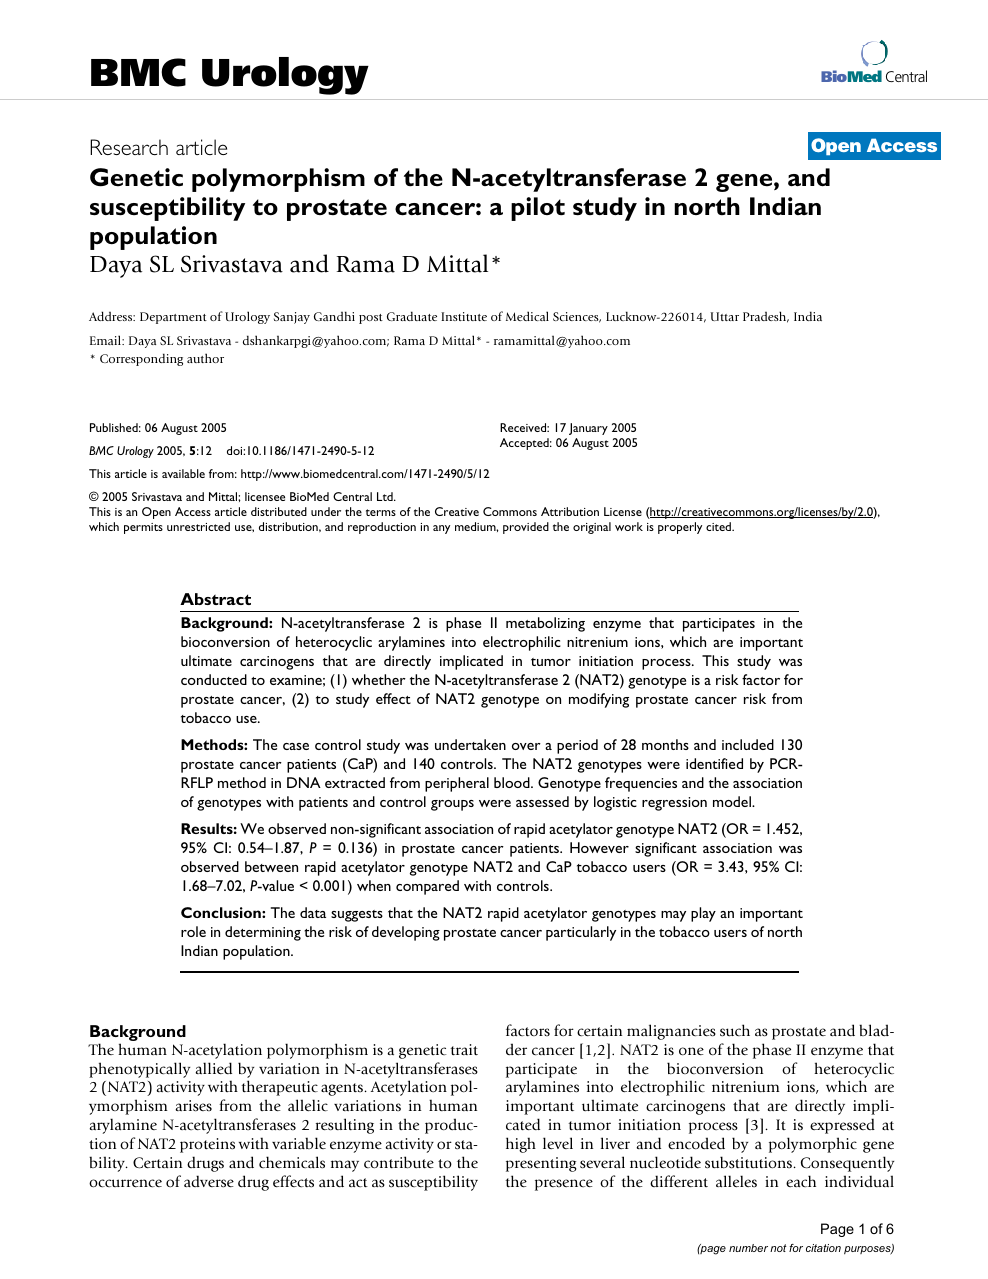 Genetic polymorphism of the N-acetyltransferase 2 gene, and